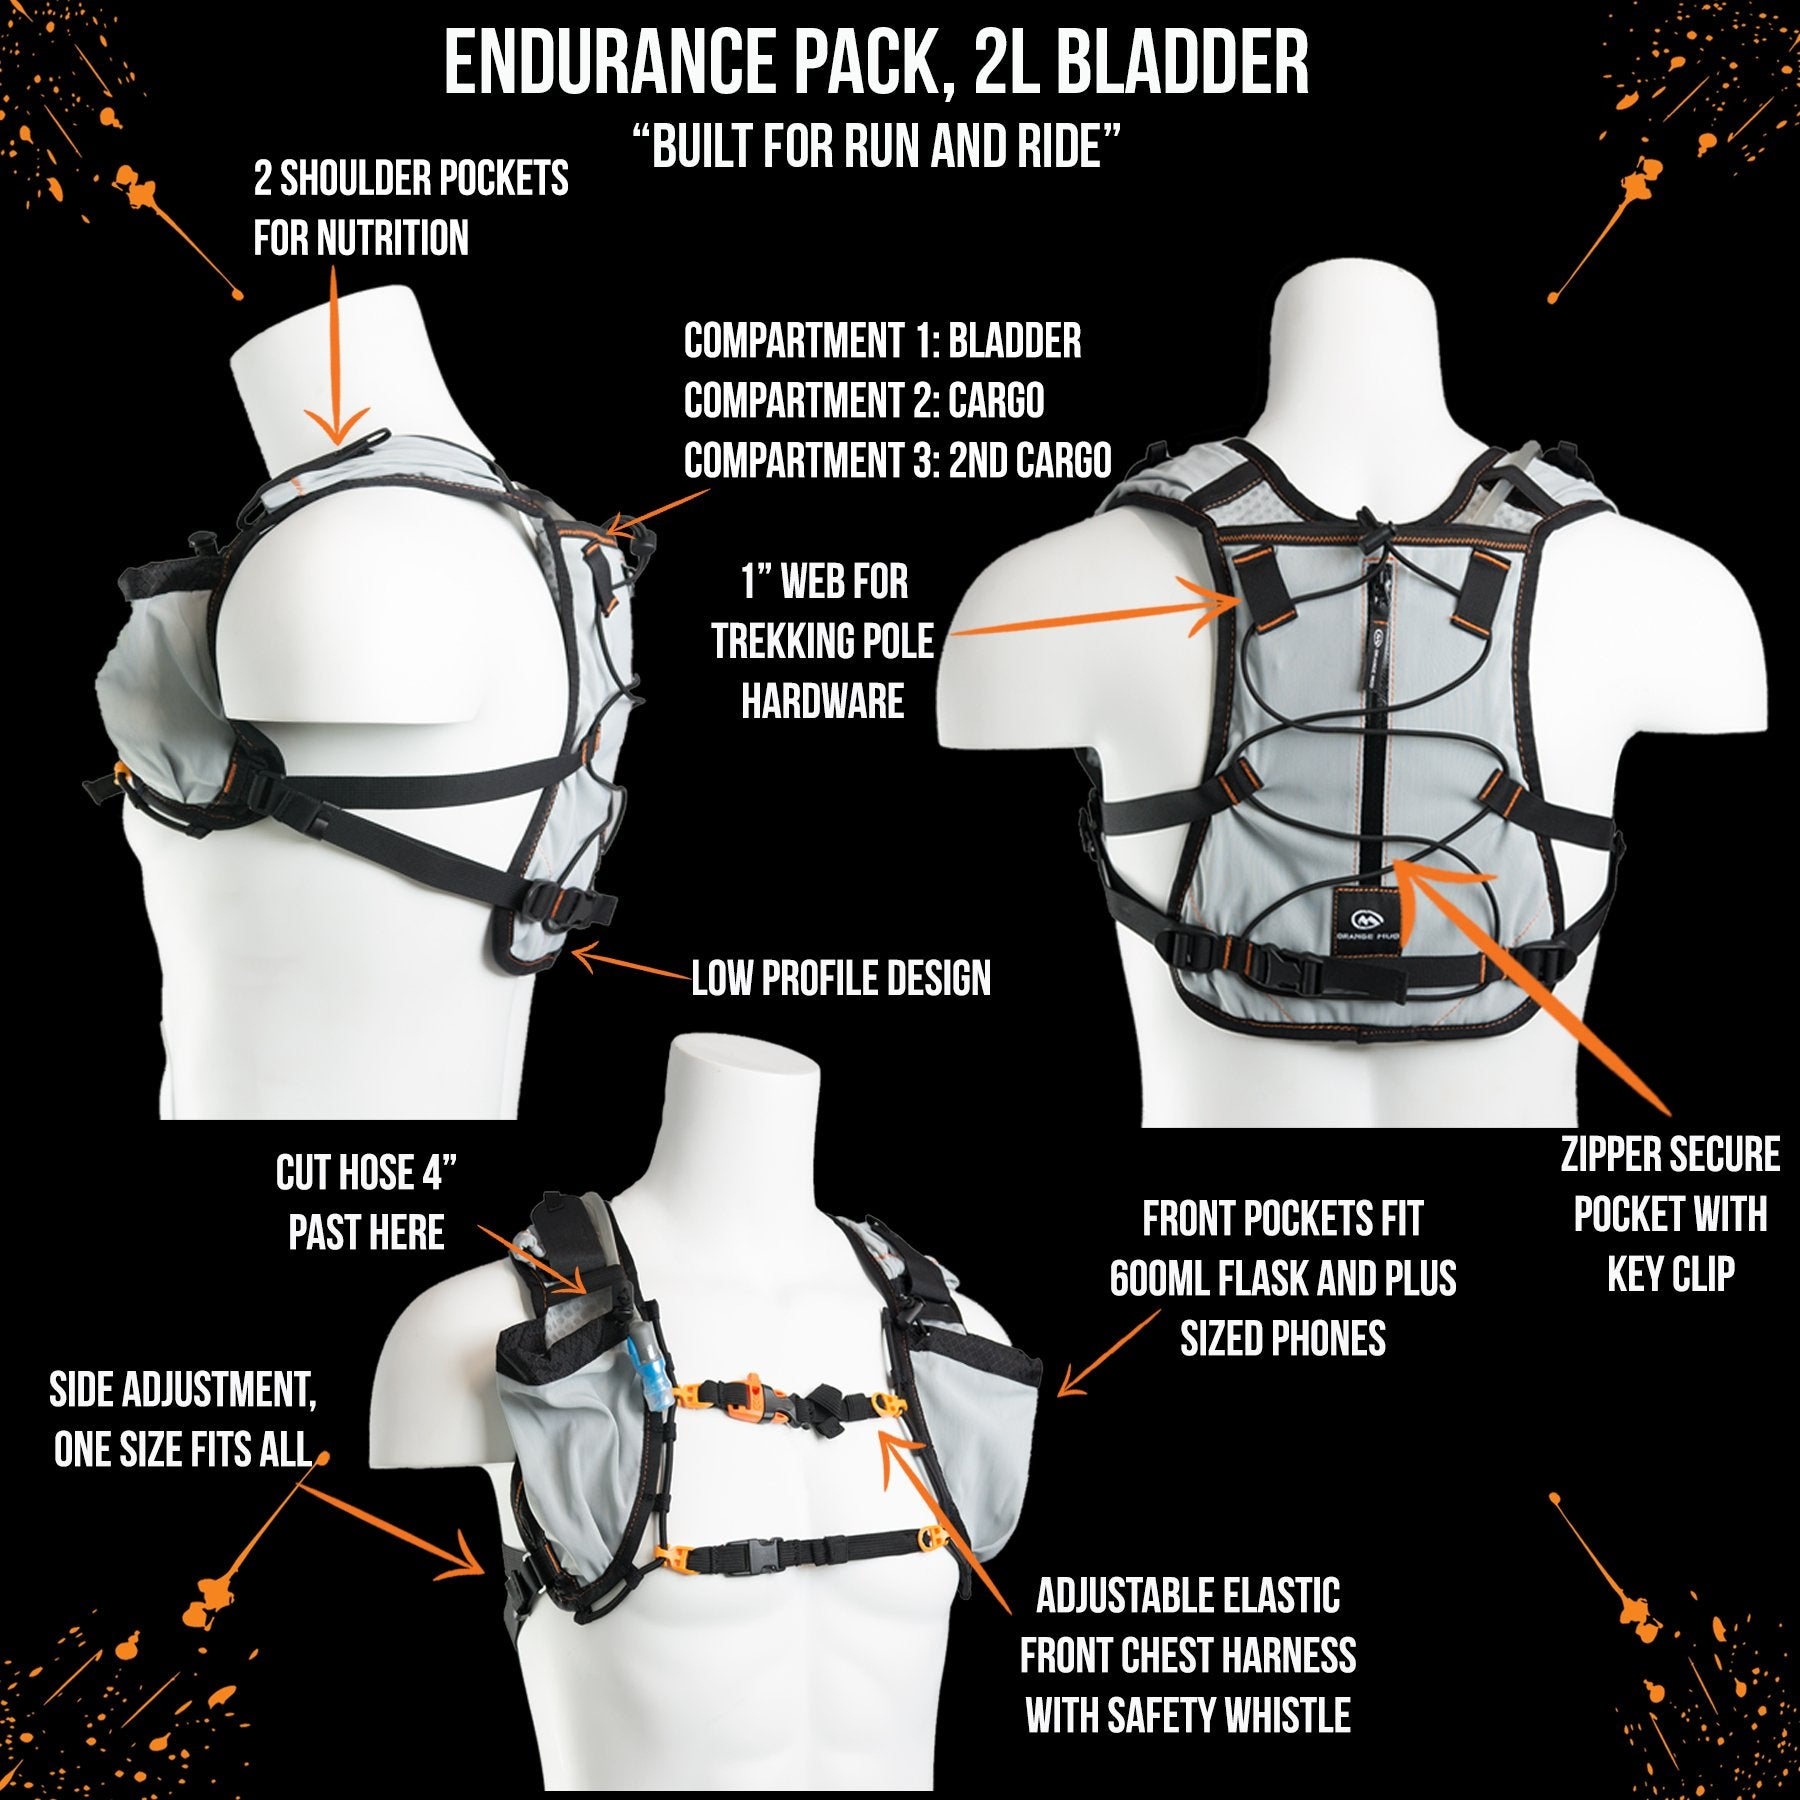 Last Years Model! Endurance Pack 4L - V1.0 (2L bladder 4L cargo): Ideal for running or mountain biking almost every distance. - Hydration